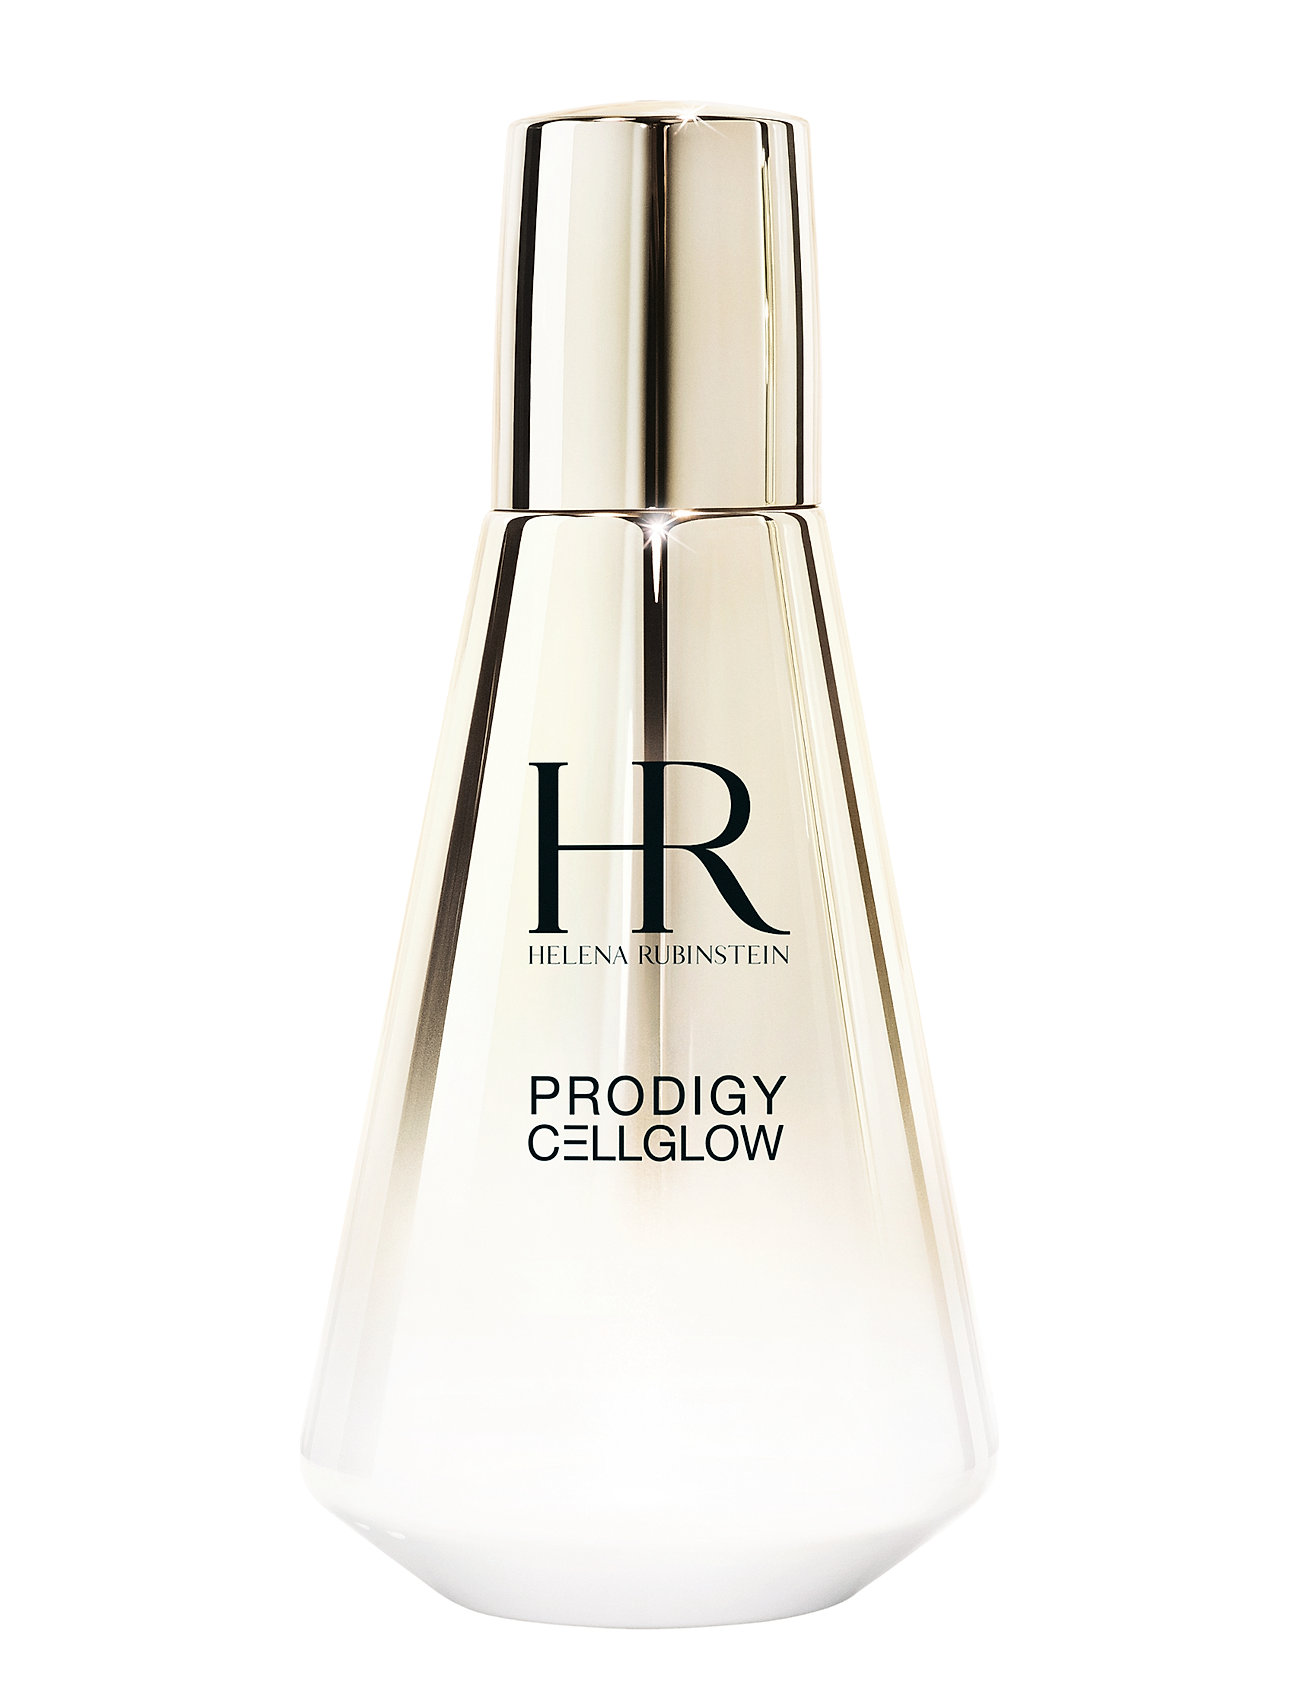 Image of Prodigy Cell Glow Concentrate 50 Ml Serum Ansigtspleje Nude Helena Rubinstein (3260819529)